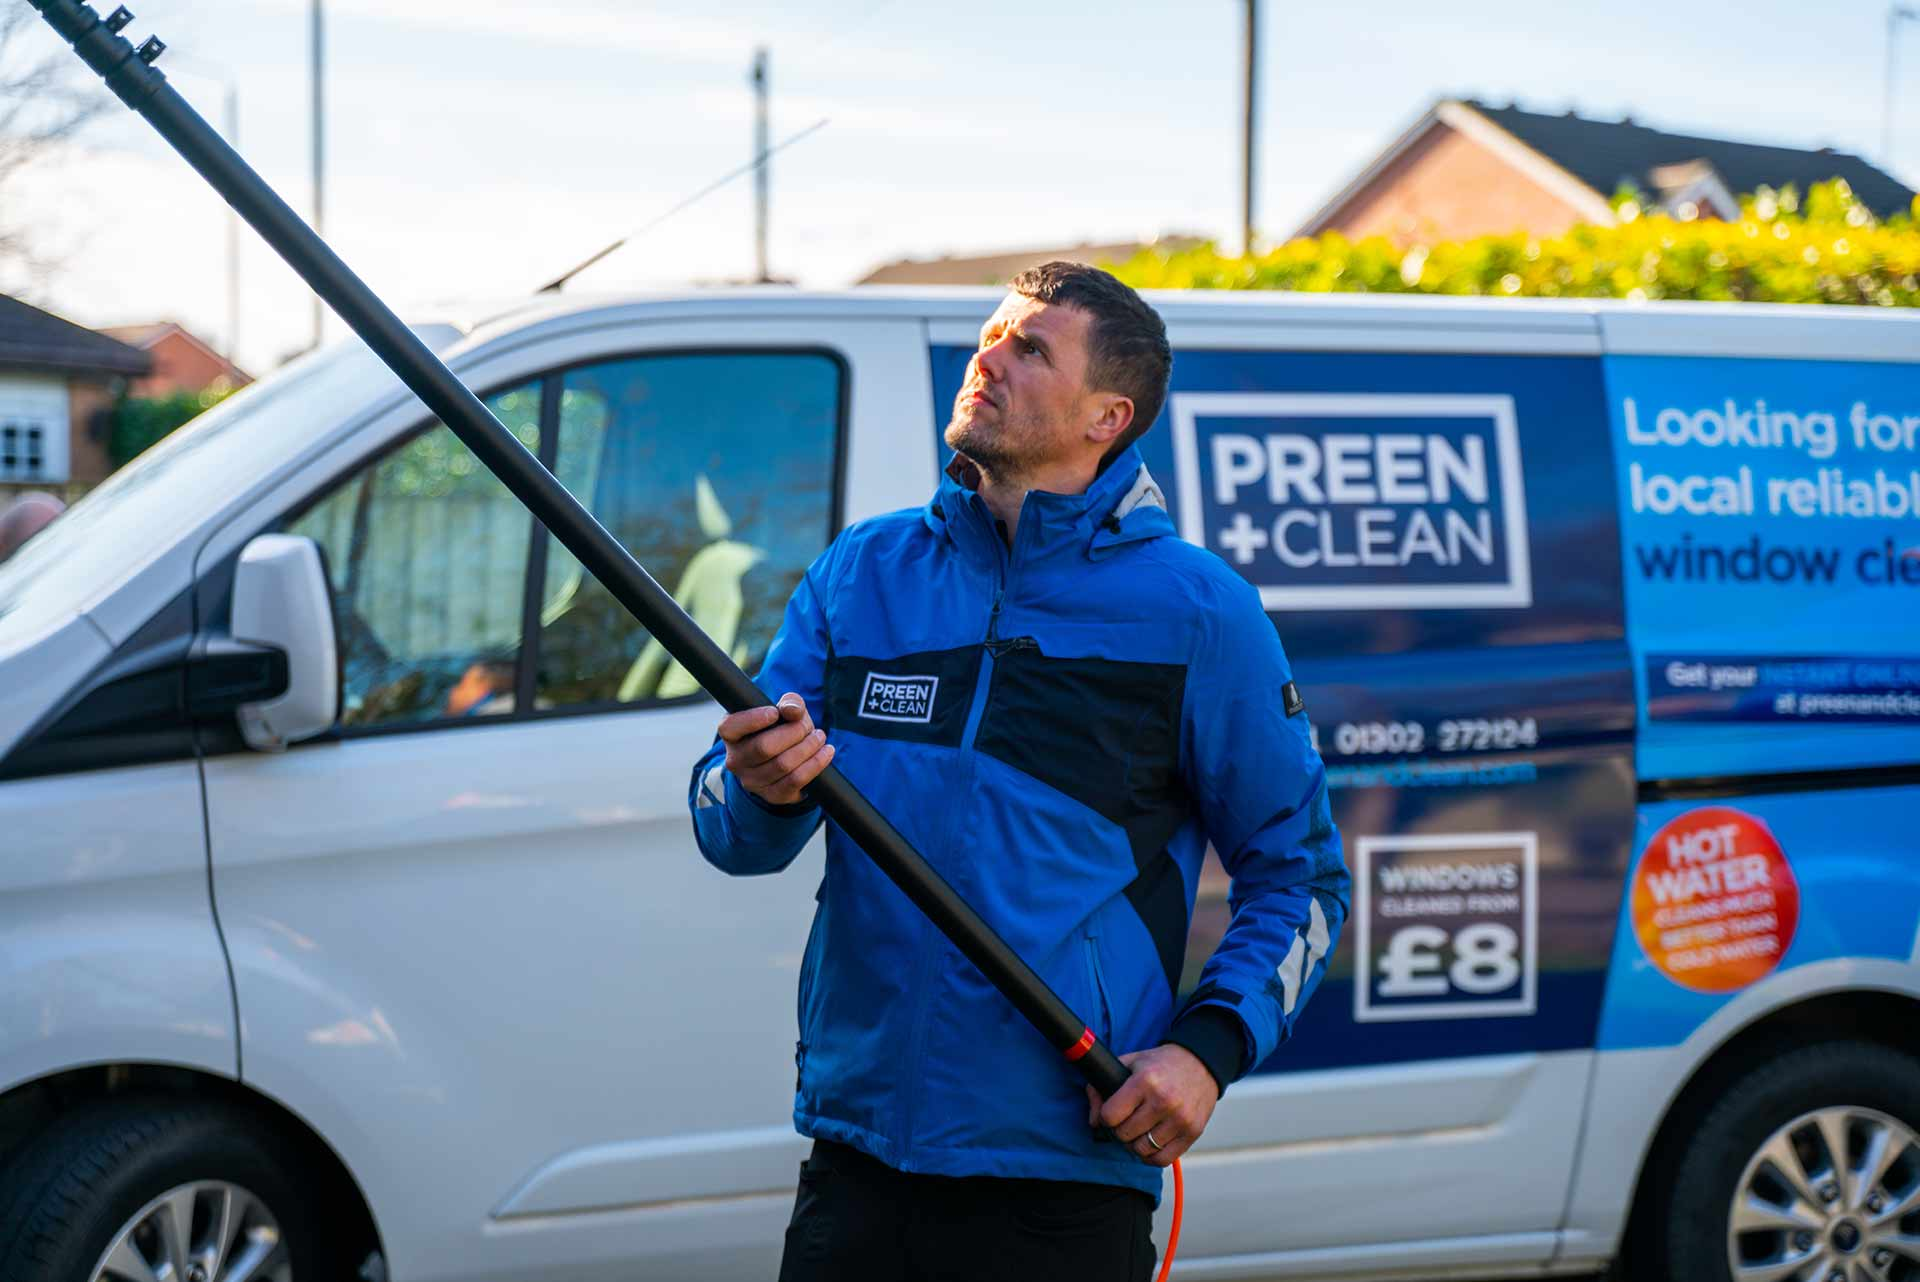 One of our window cleaners in action